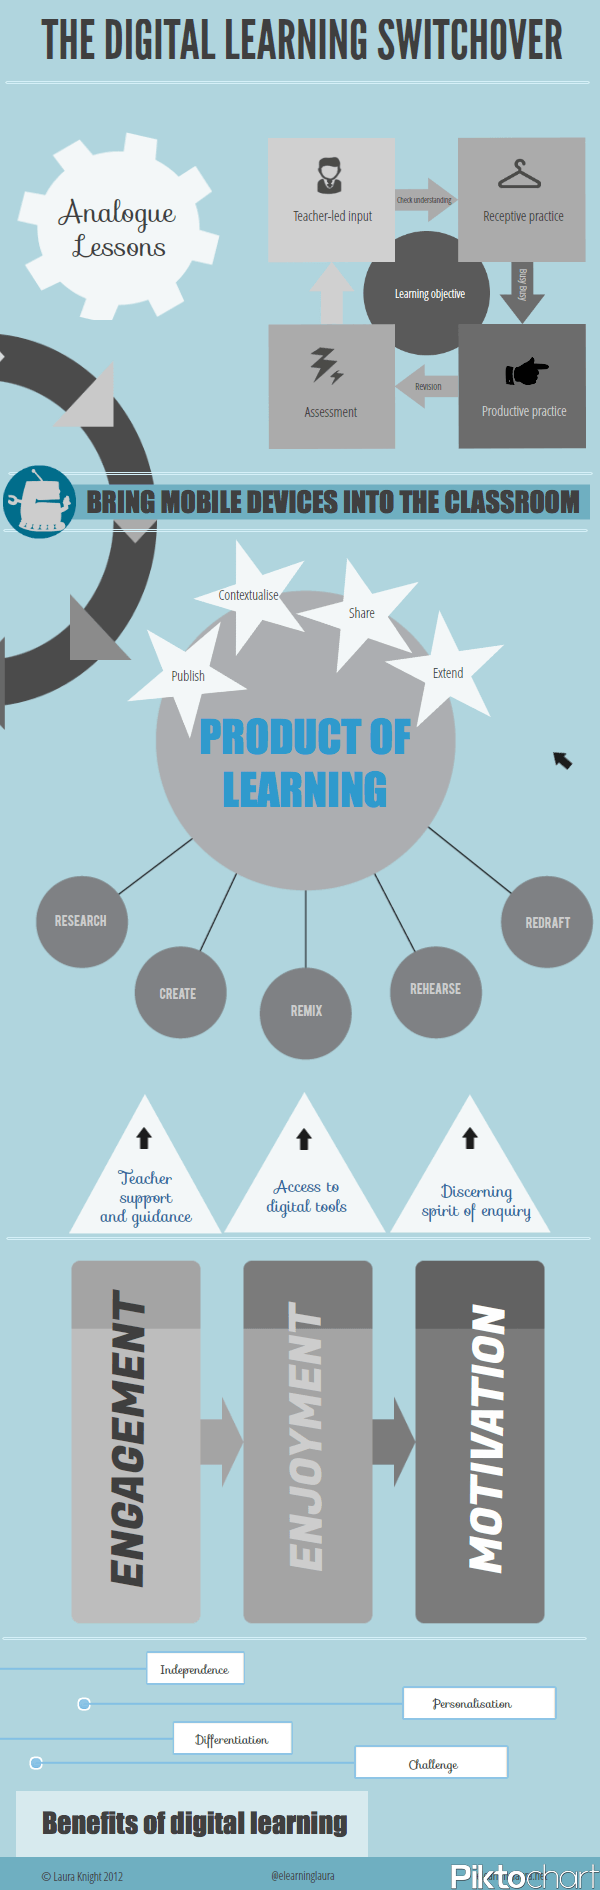 The Digital Learning Switchover Infographic